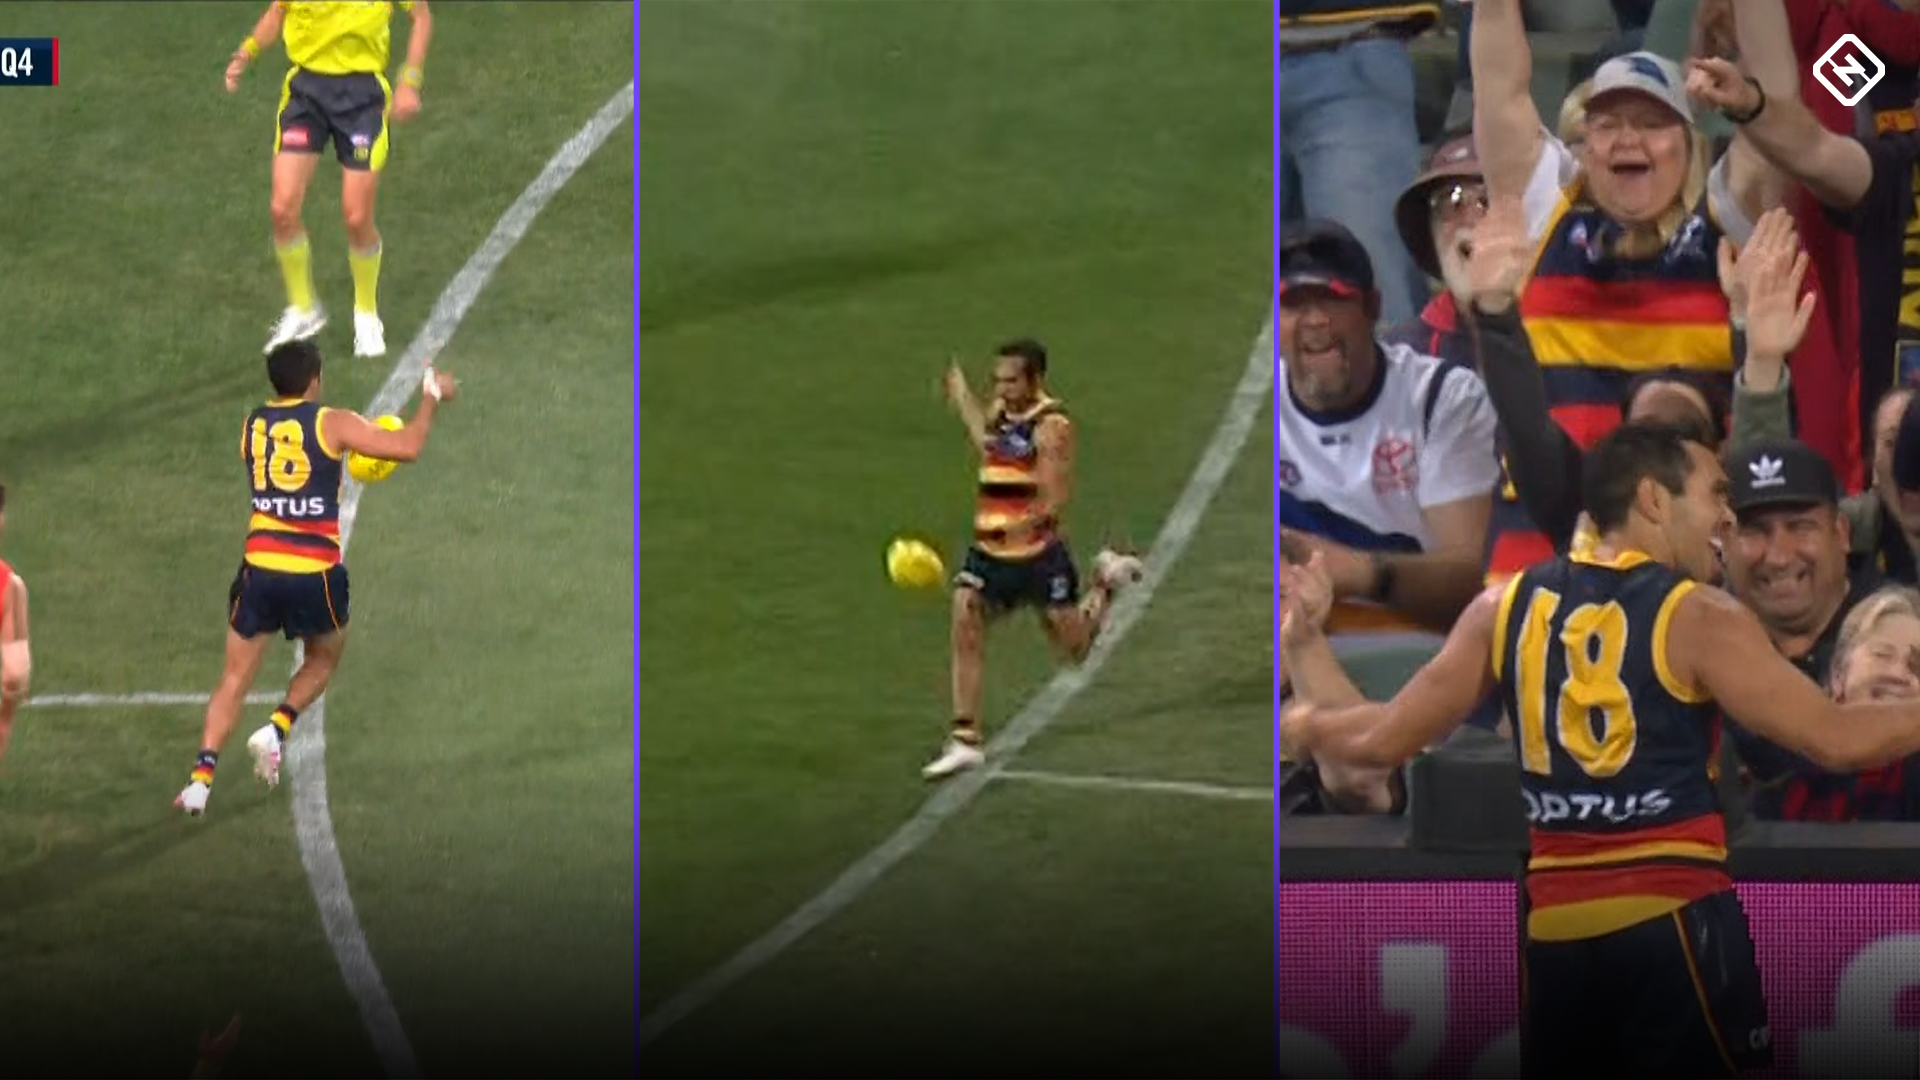 Eddie Betts delivers a magical goal in 300th game masterclass